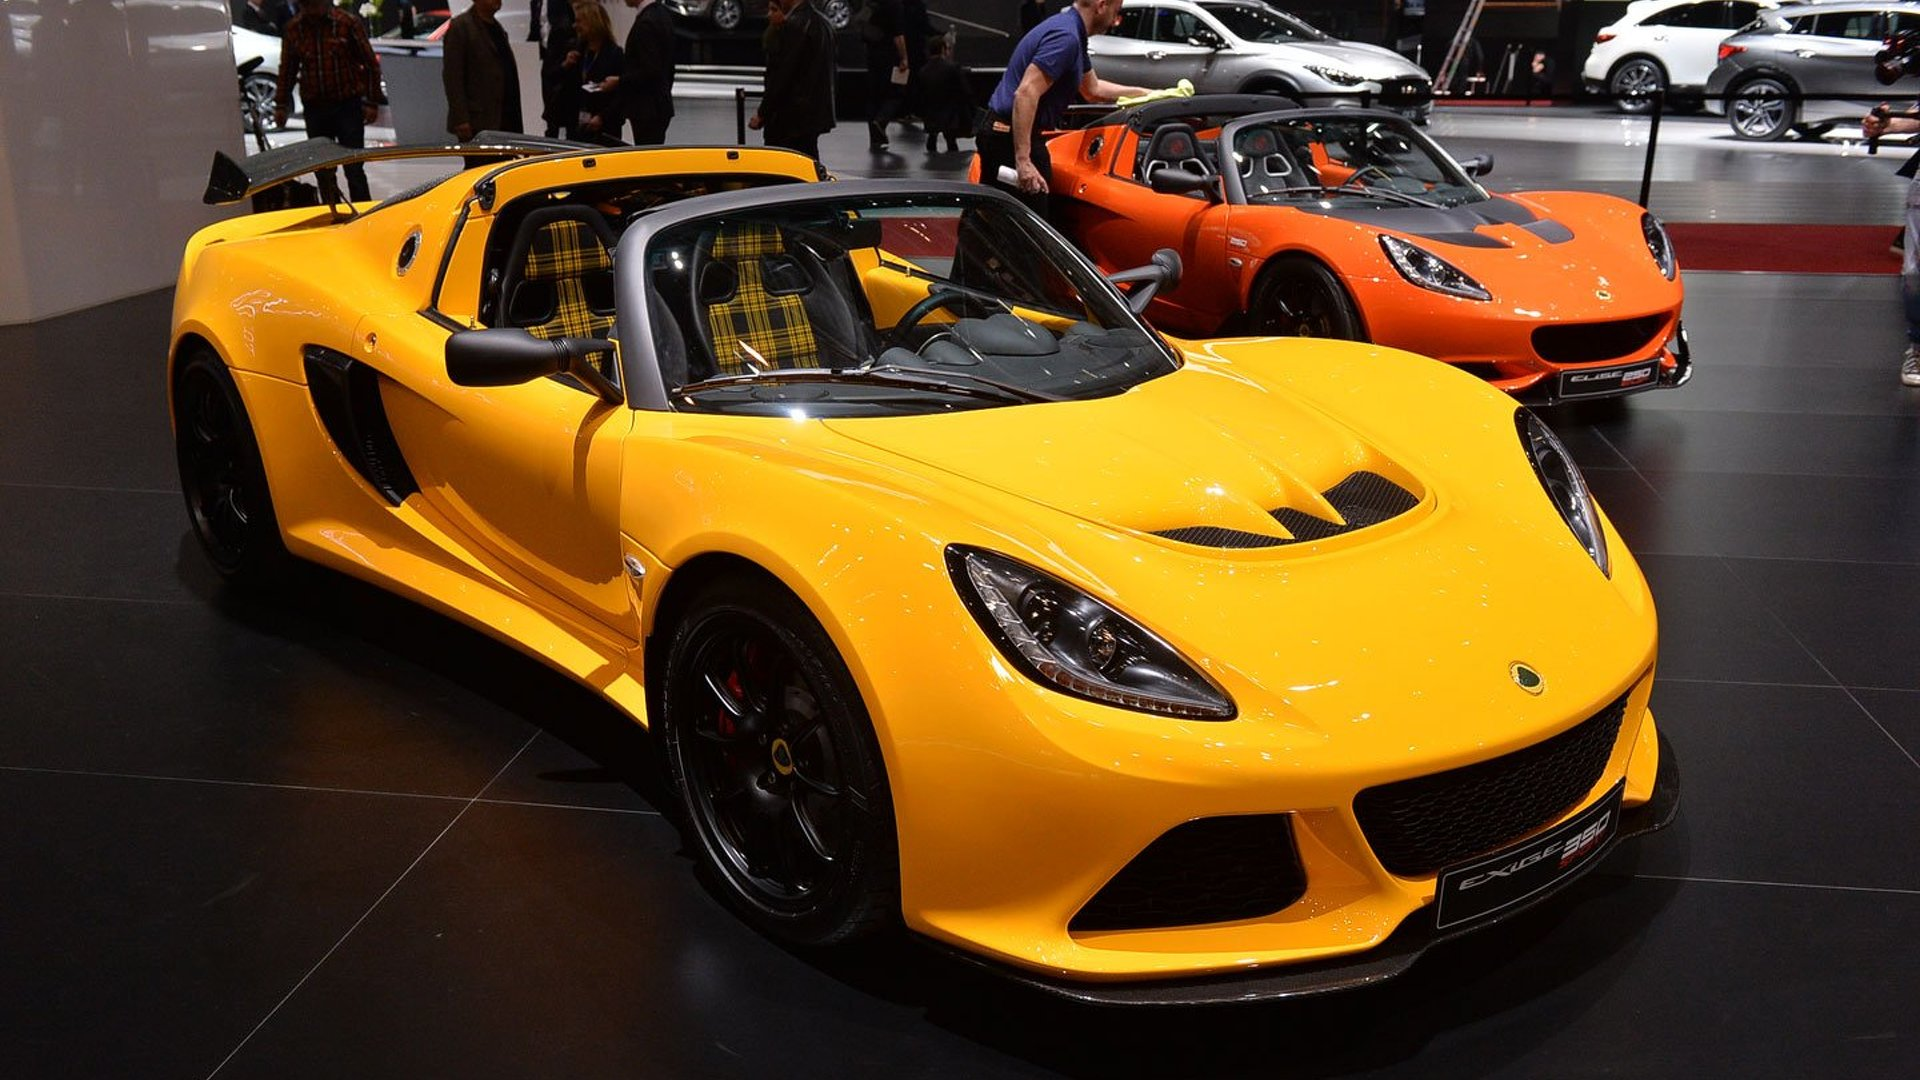 Lotus Exige Sport 350 Roadster unveiled with 345 hp